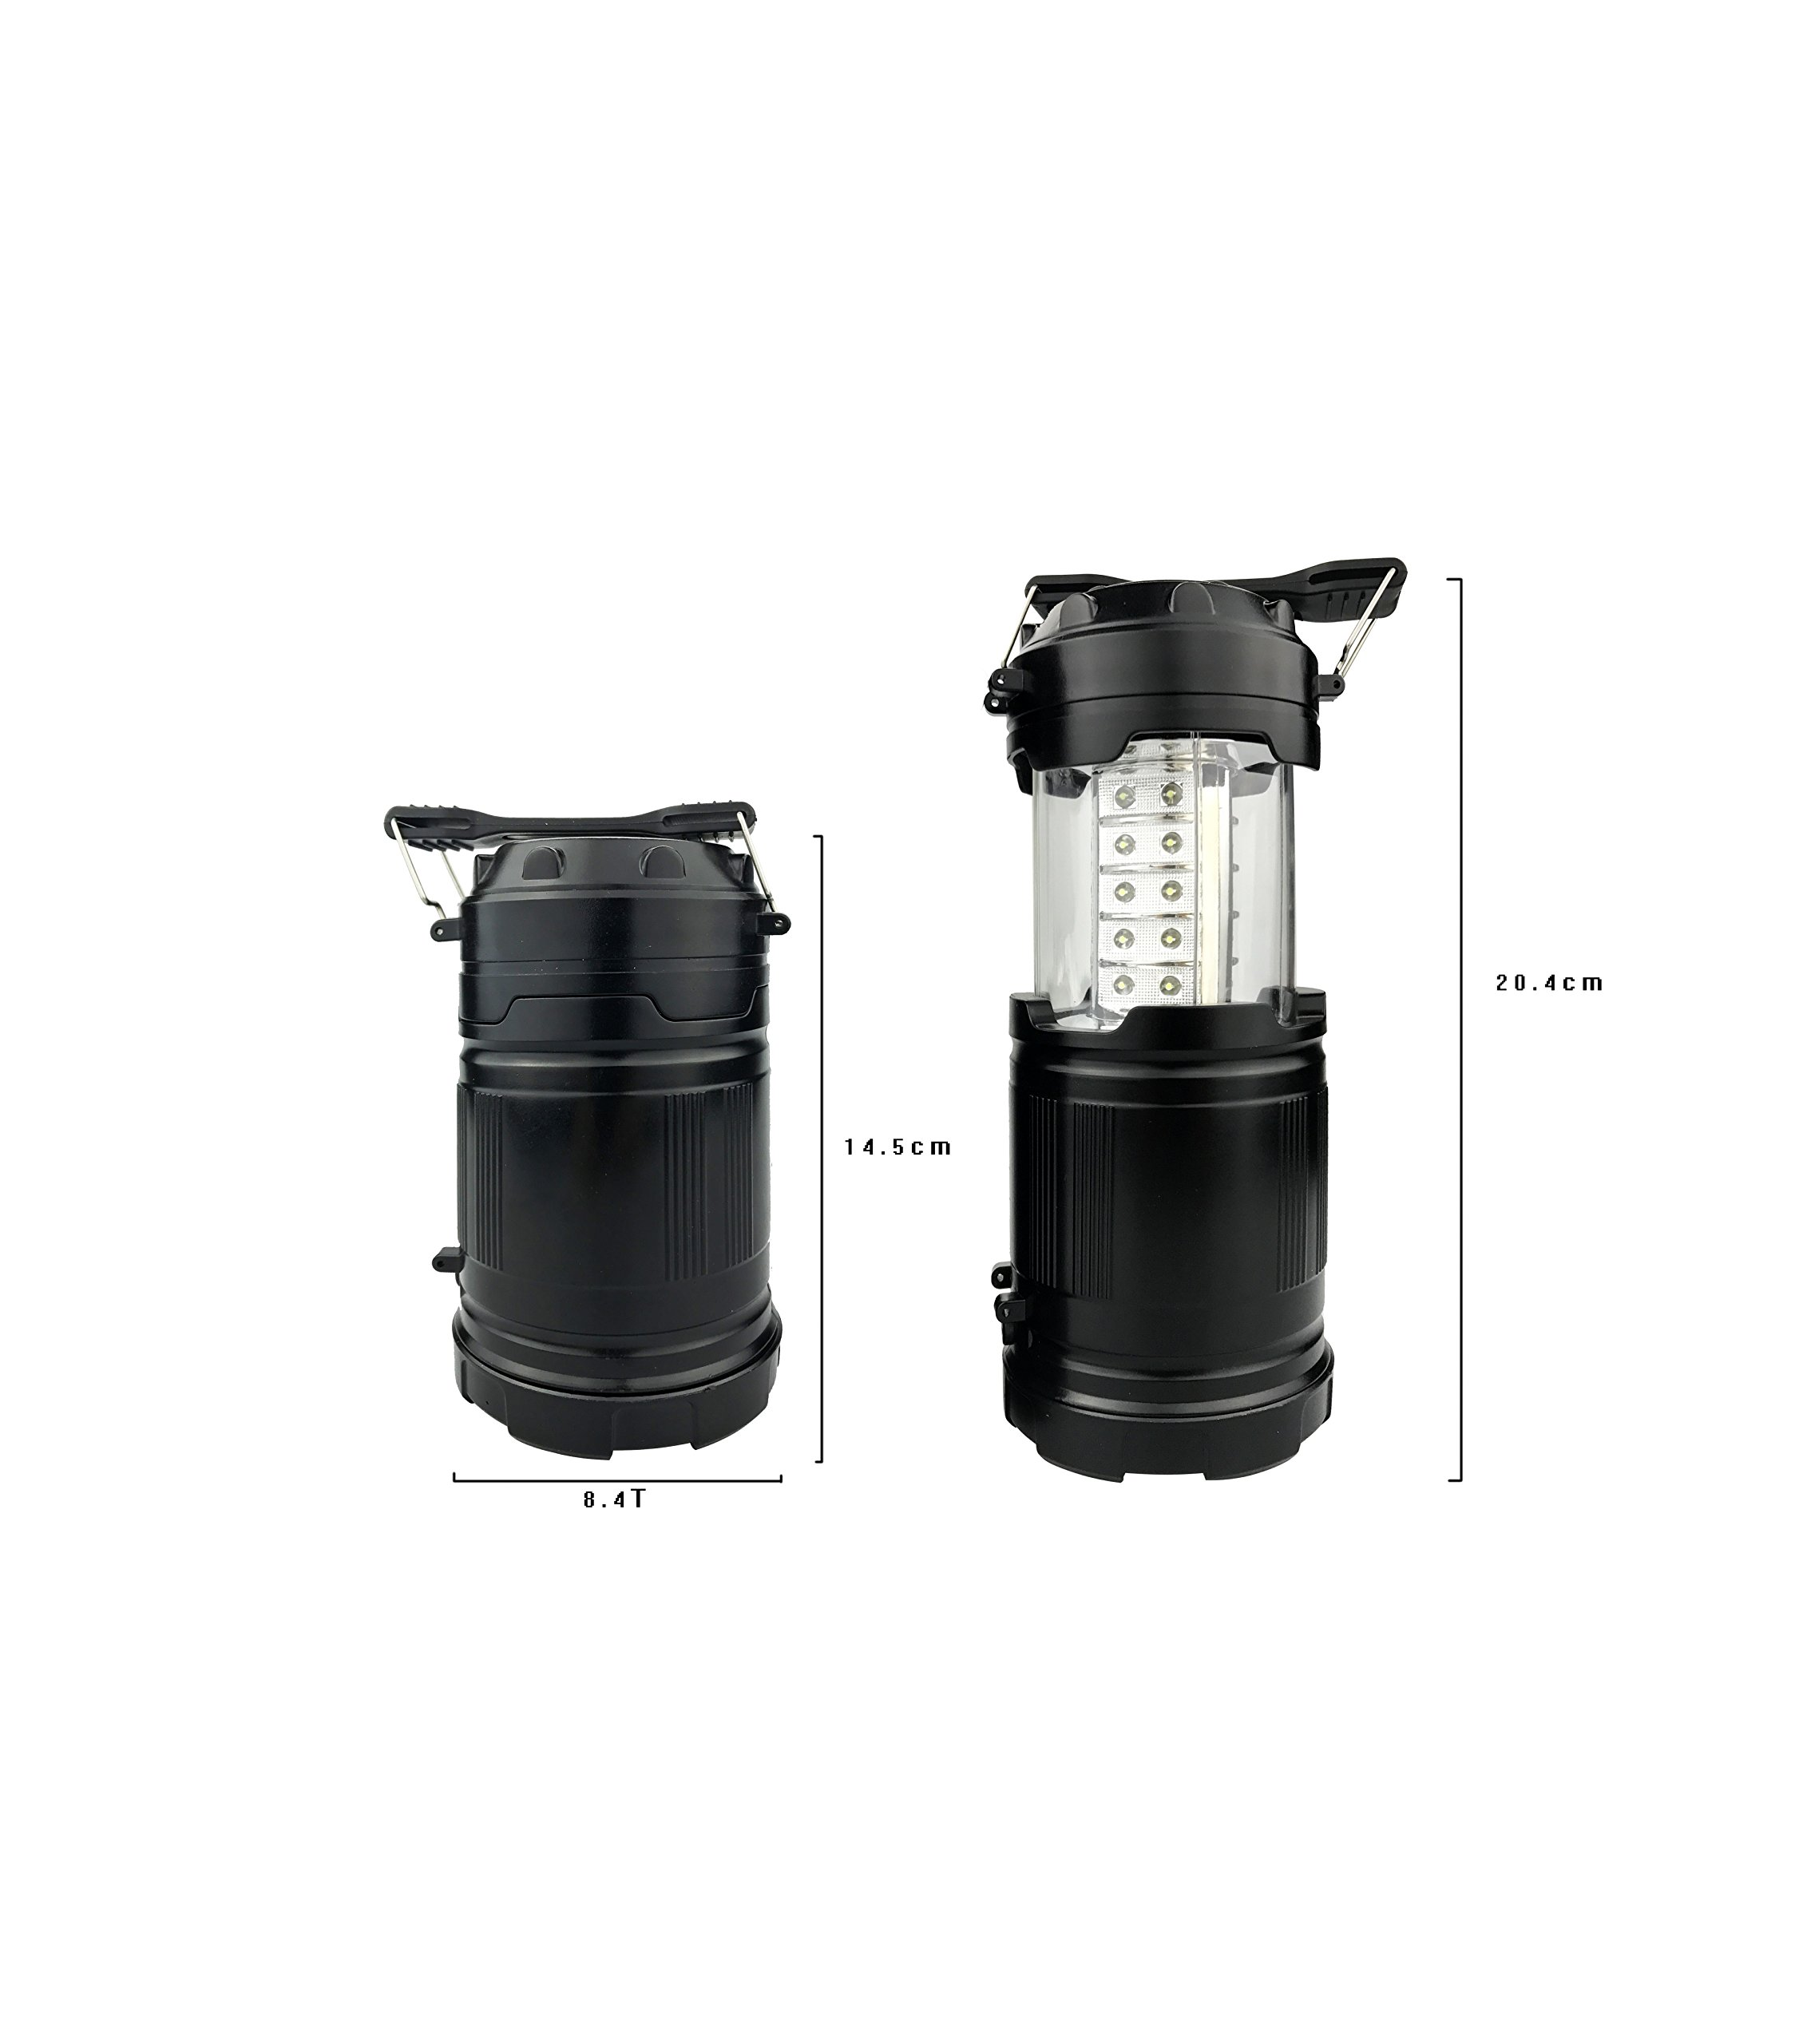 Windaze Camping Lantern 2 in 1 LED Flashlights Water Resistant Lamp Battery Powered Ultra- Bright Light for Hiking Fishing Emergency